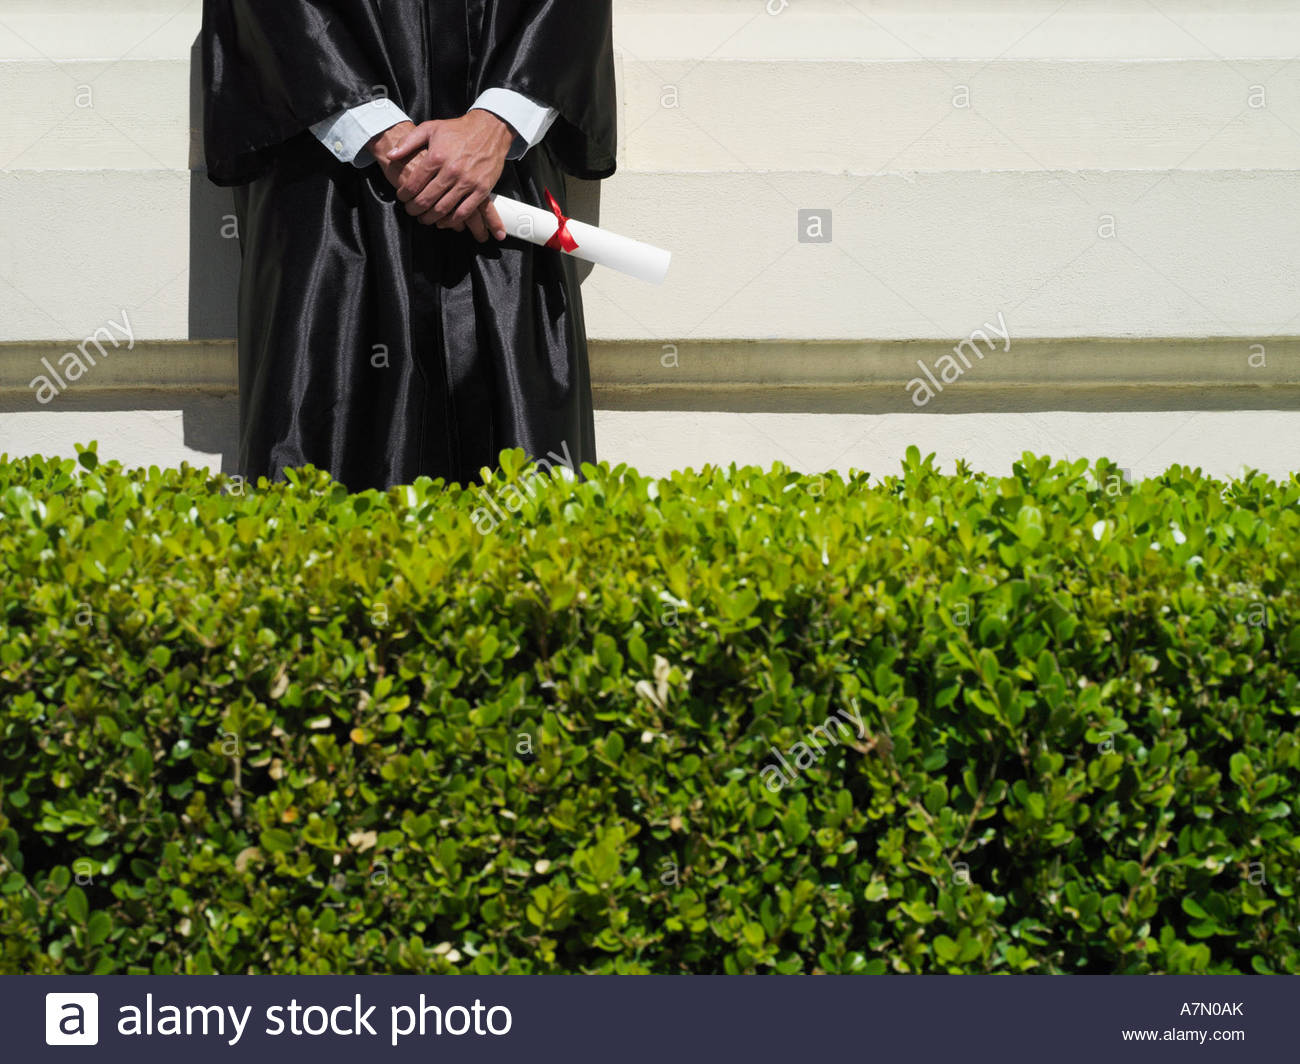 University student in graduation gown holding diploma mid section hedge in foreground - Stock Image